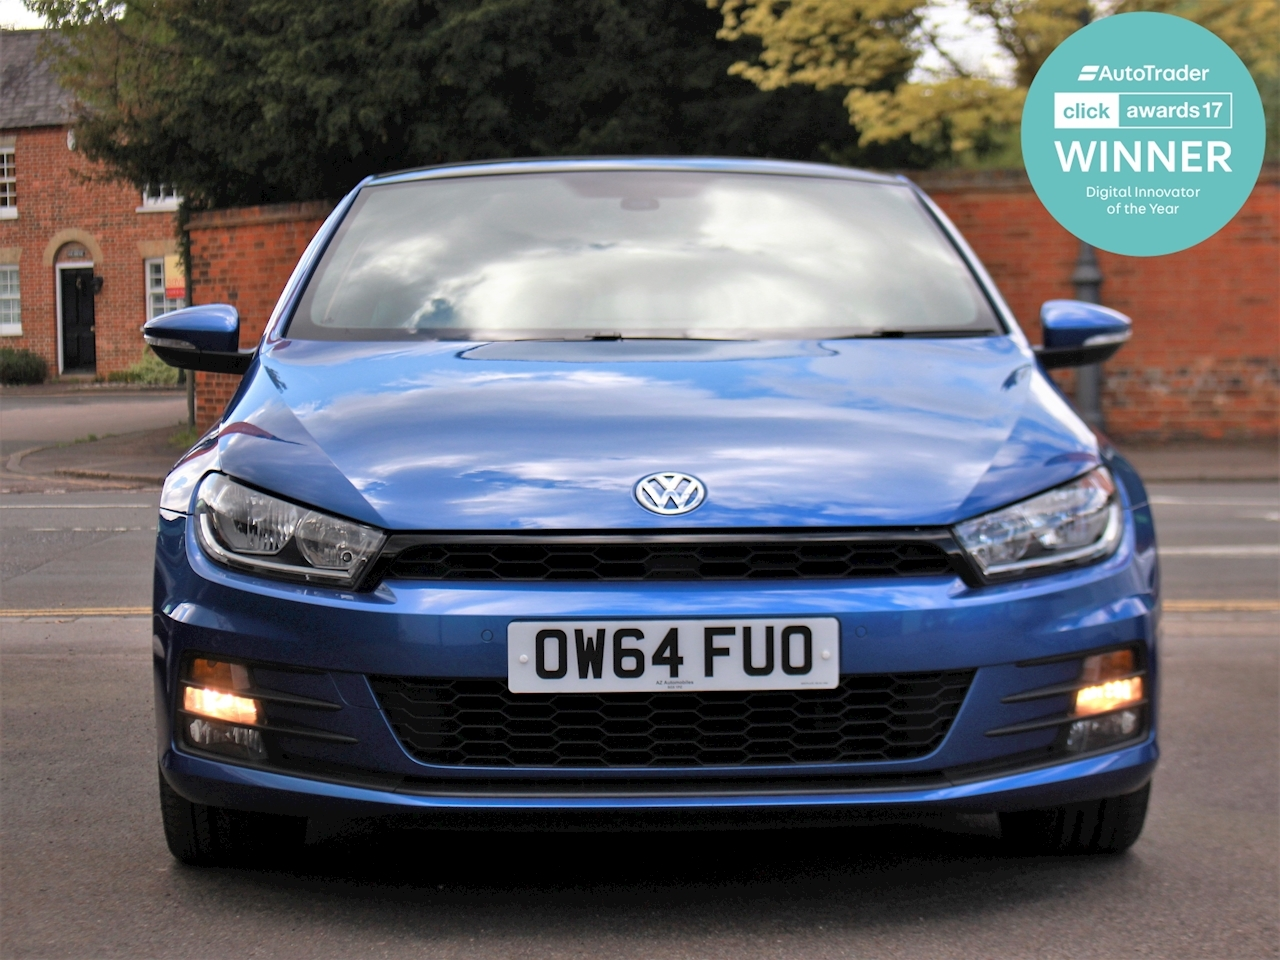 Volkswagen Scirocco Gt Tdi Bluemotion Technology Dsg - Large 1